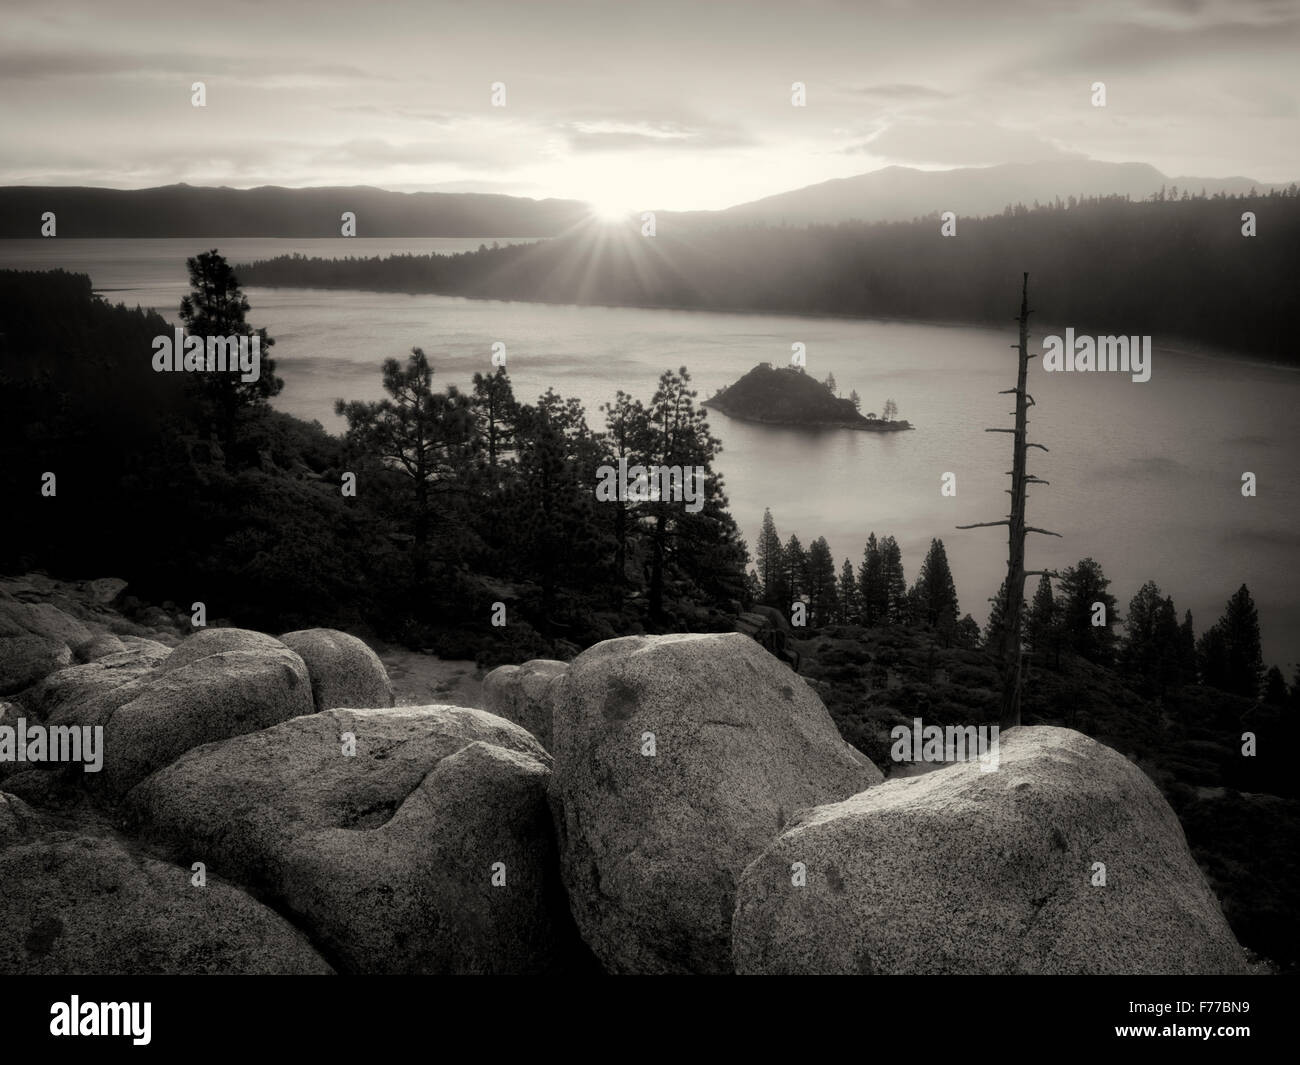 Lever du soleil et les rochers de granit à Emerald Bay, Lake Tahoe, California Photo Stock